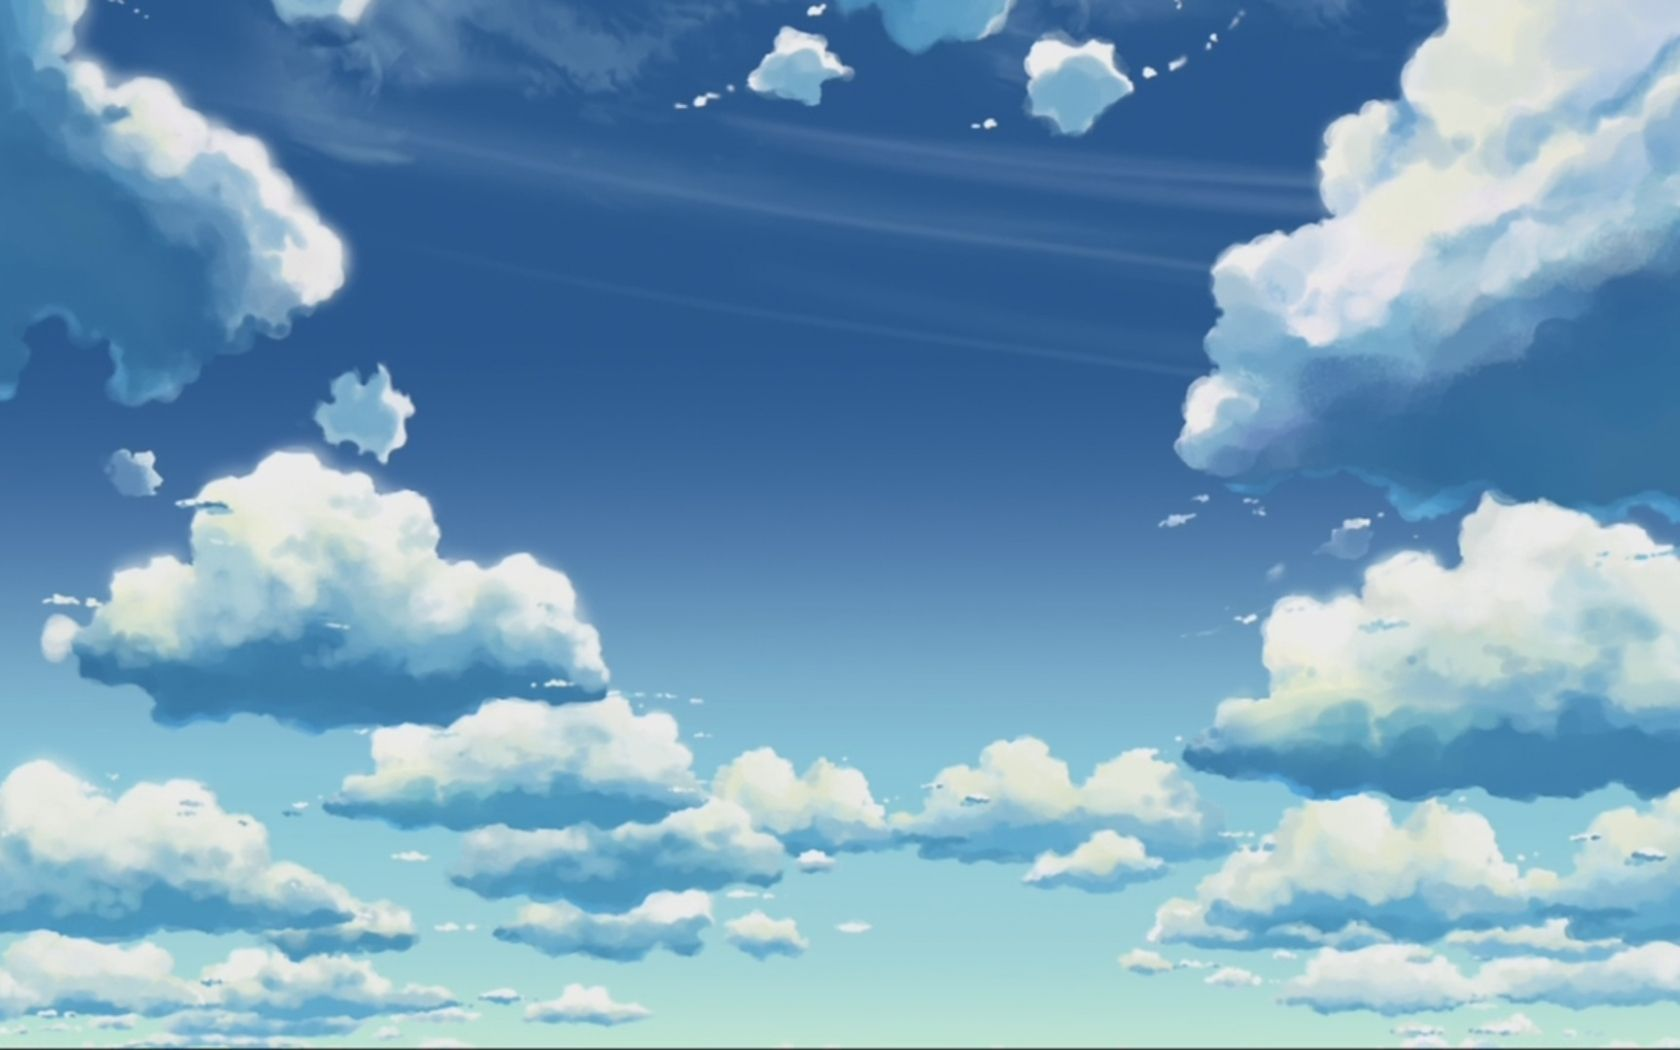 Anime Sky Full Hd Wallpapers Wallpaper Cave